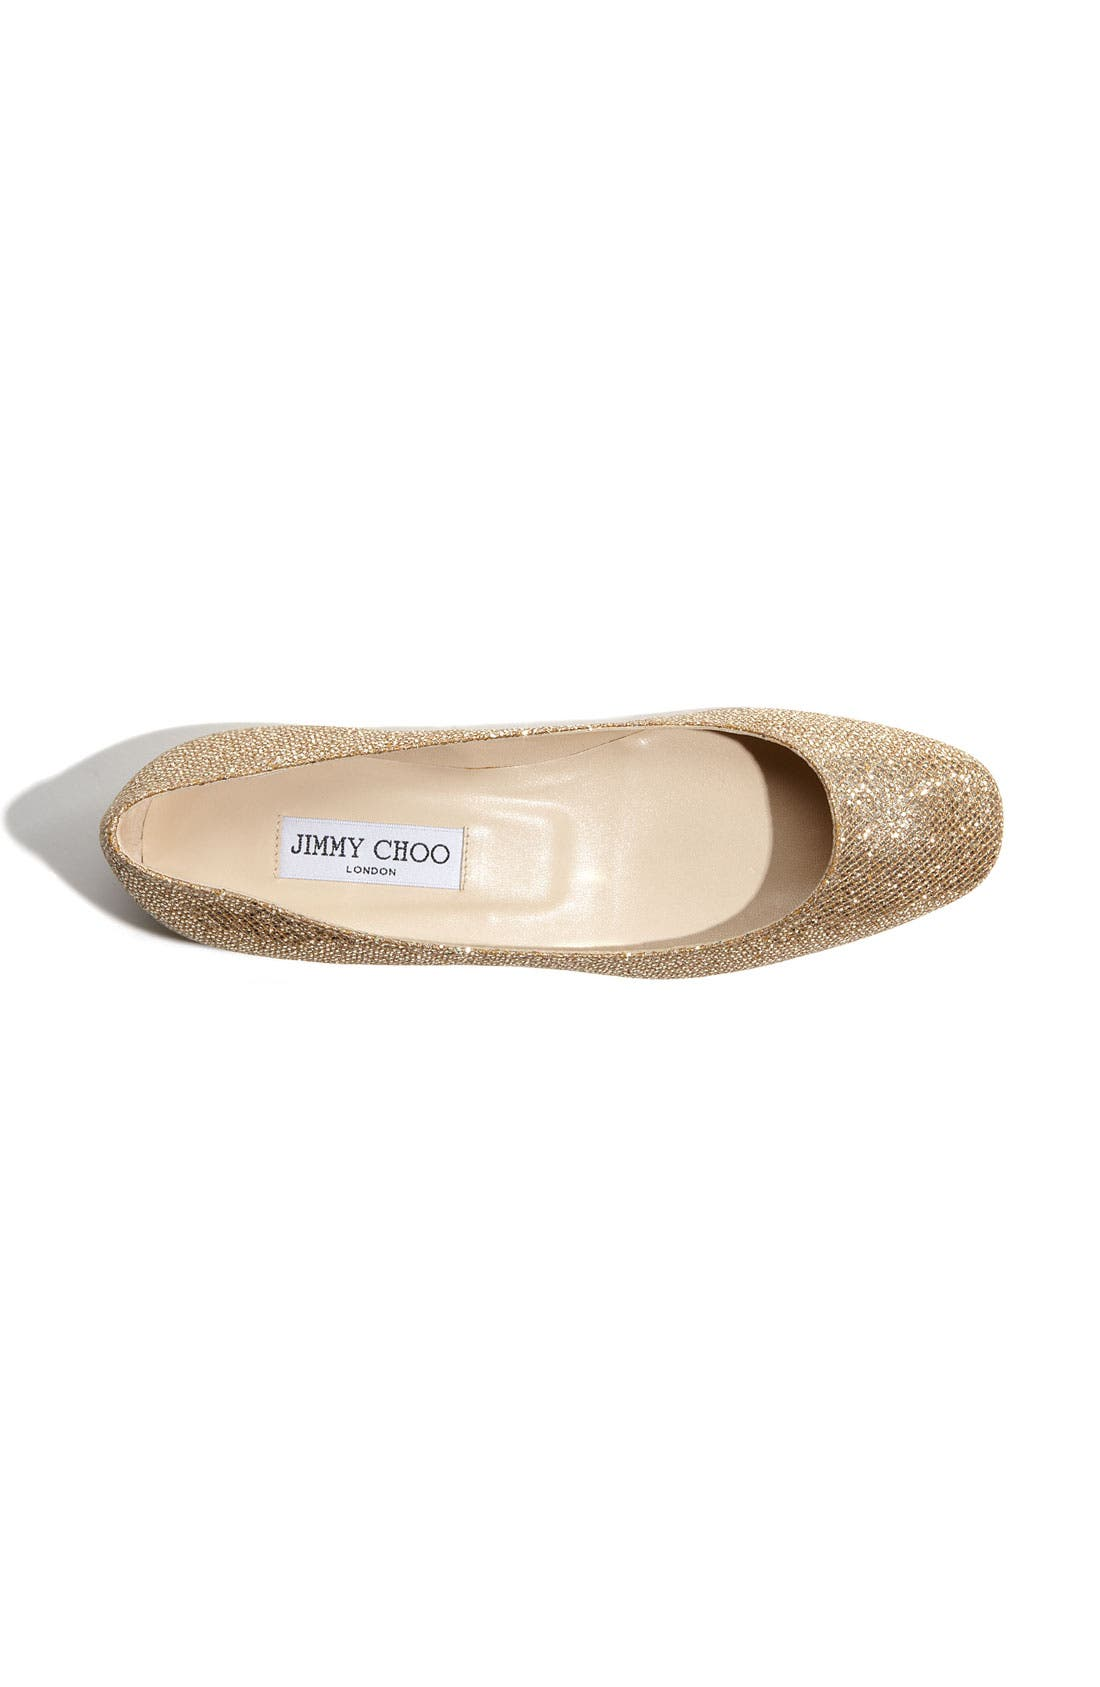 Alternate Image 3  - Jimmy Choo 'Finlay' Flat